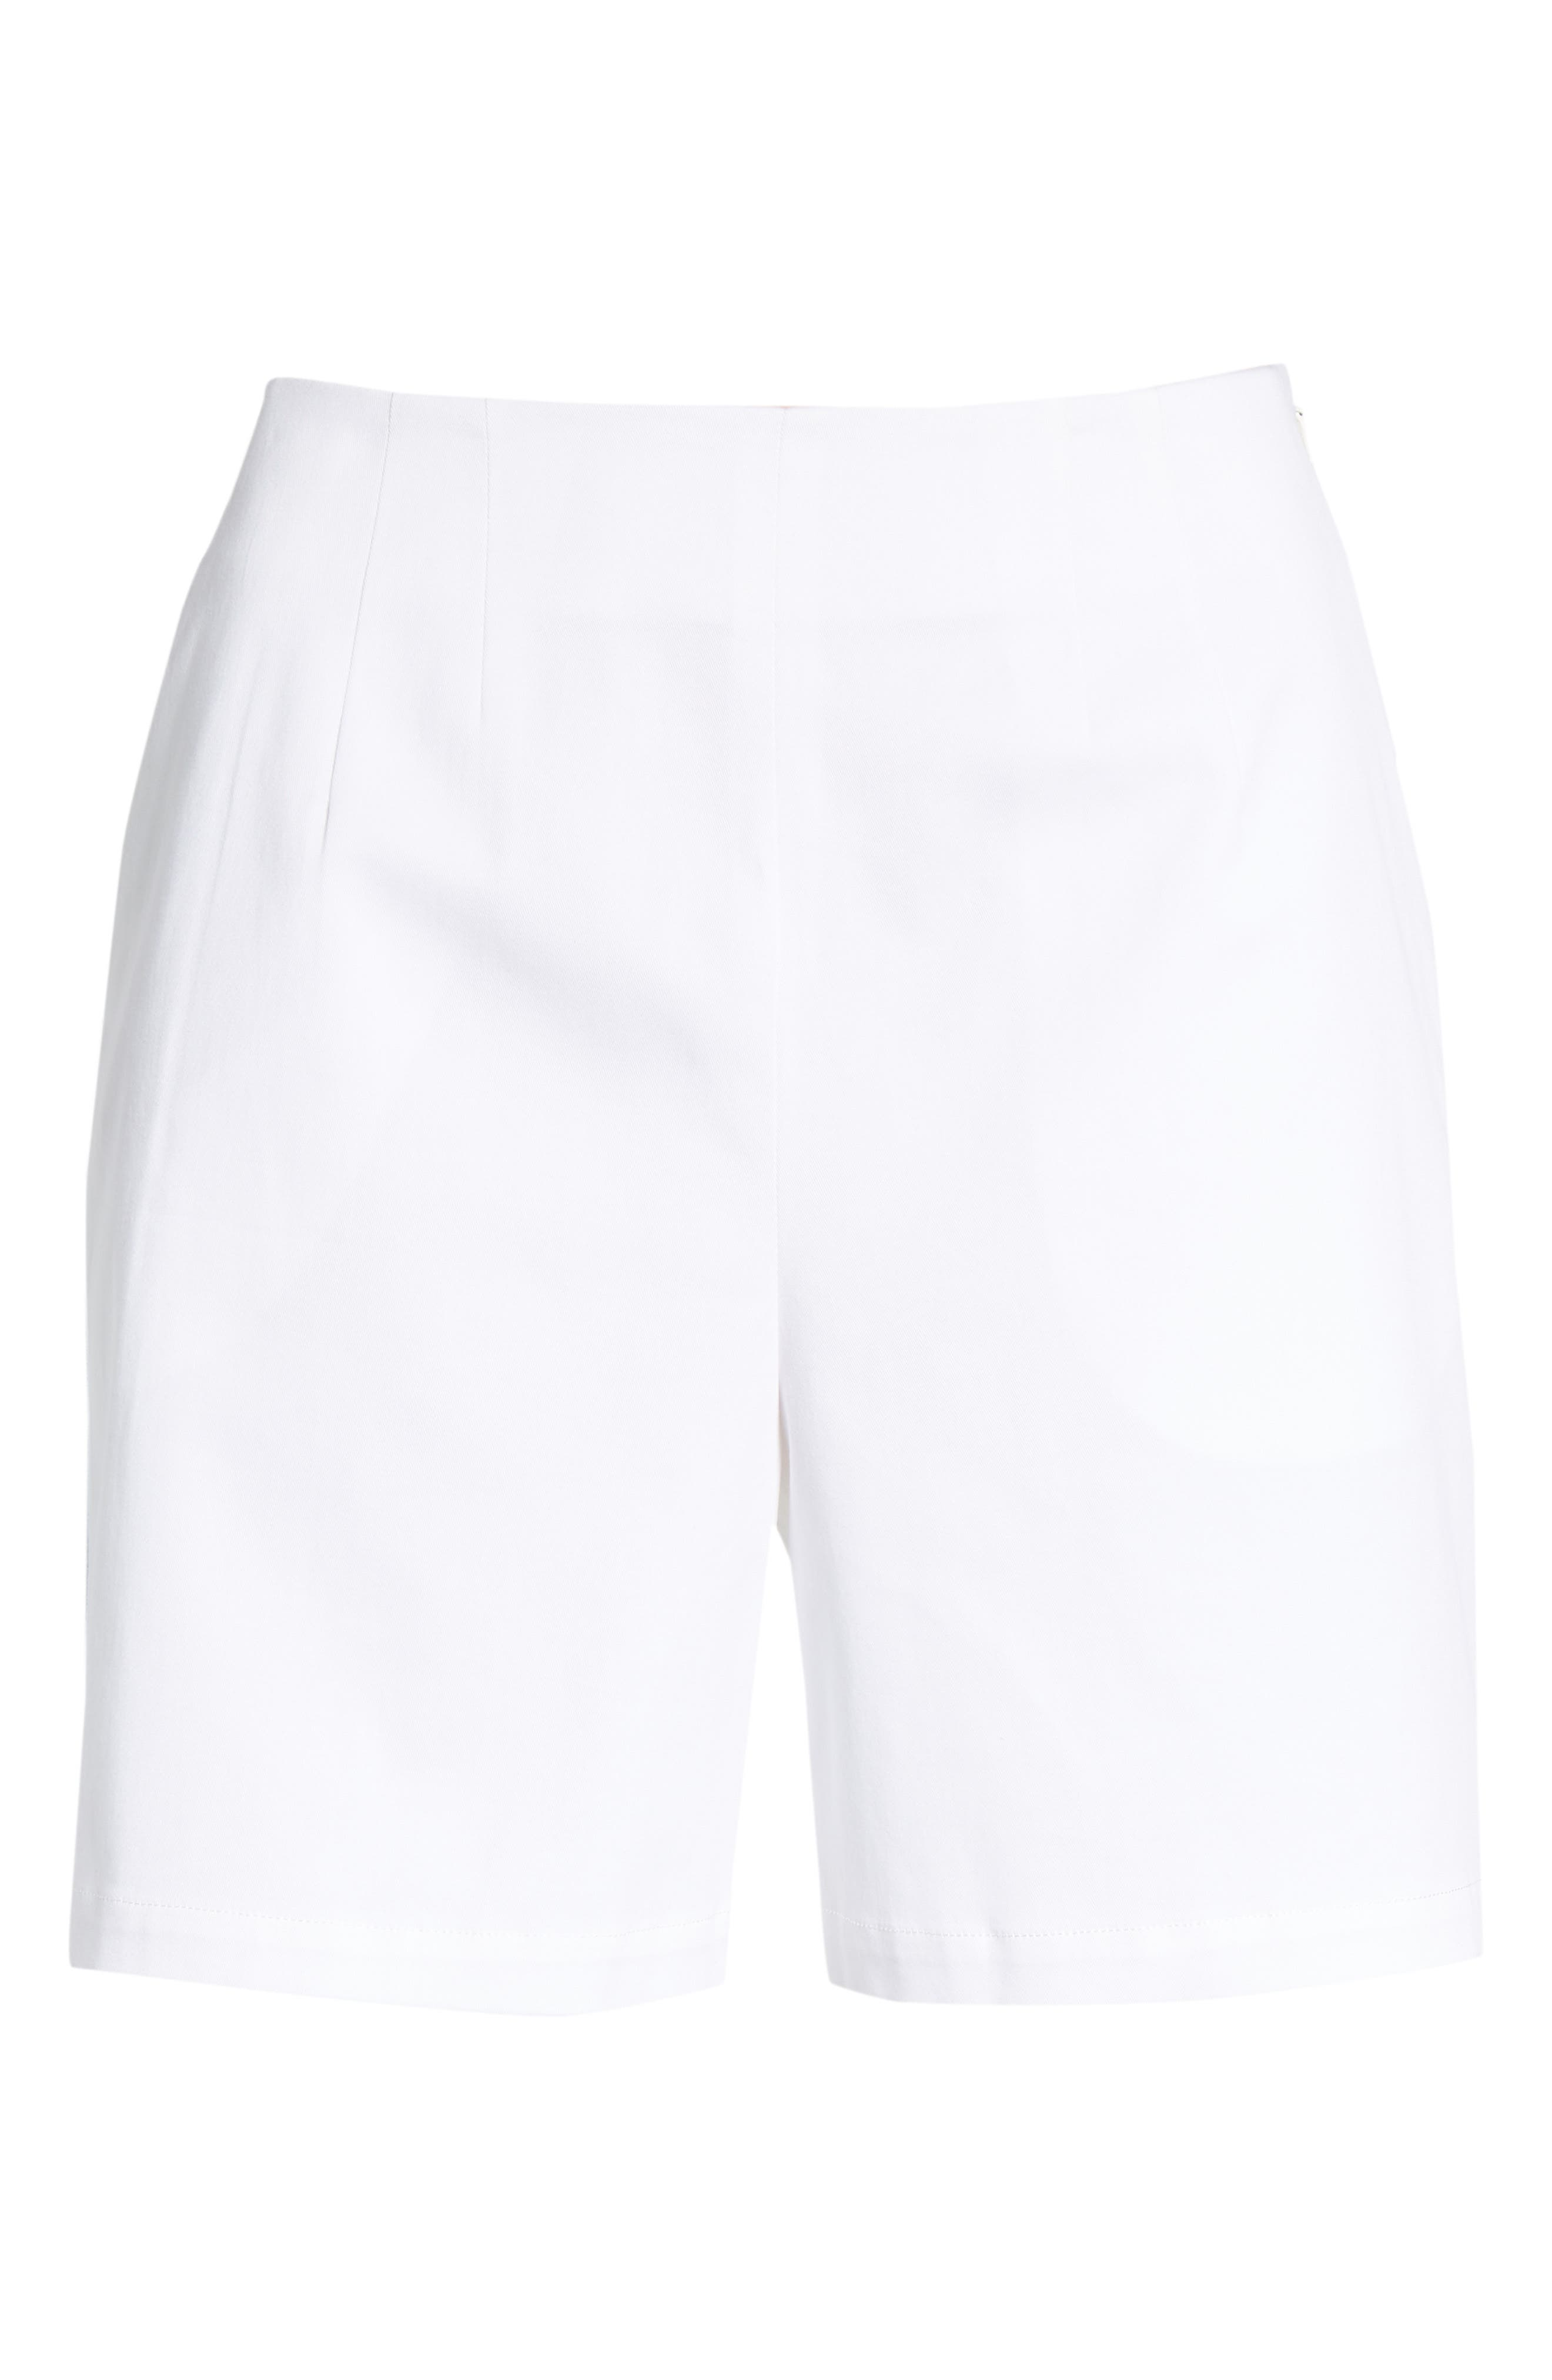 Clean Twill Shorts,                             Alternate thumbnail 4, color,                             White